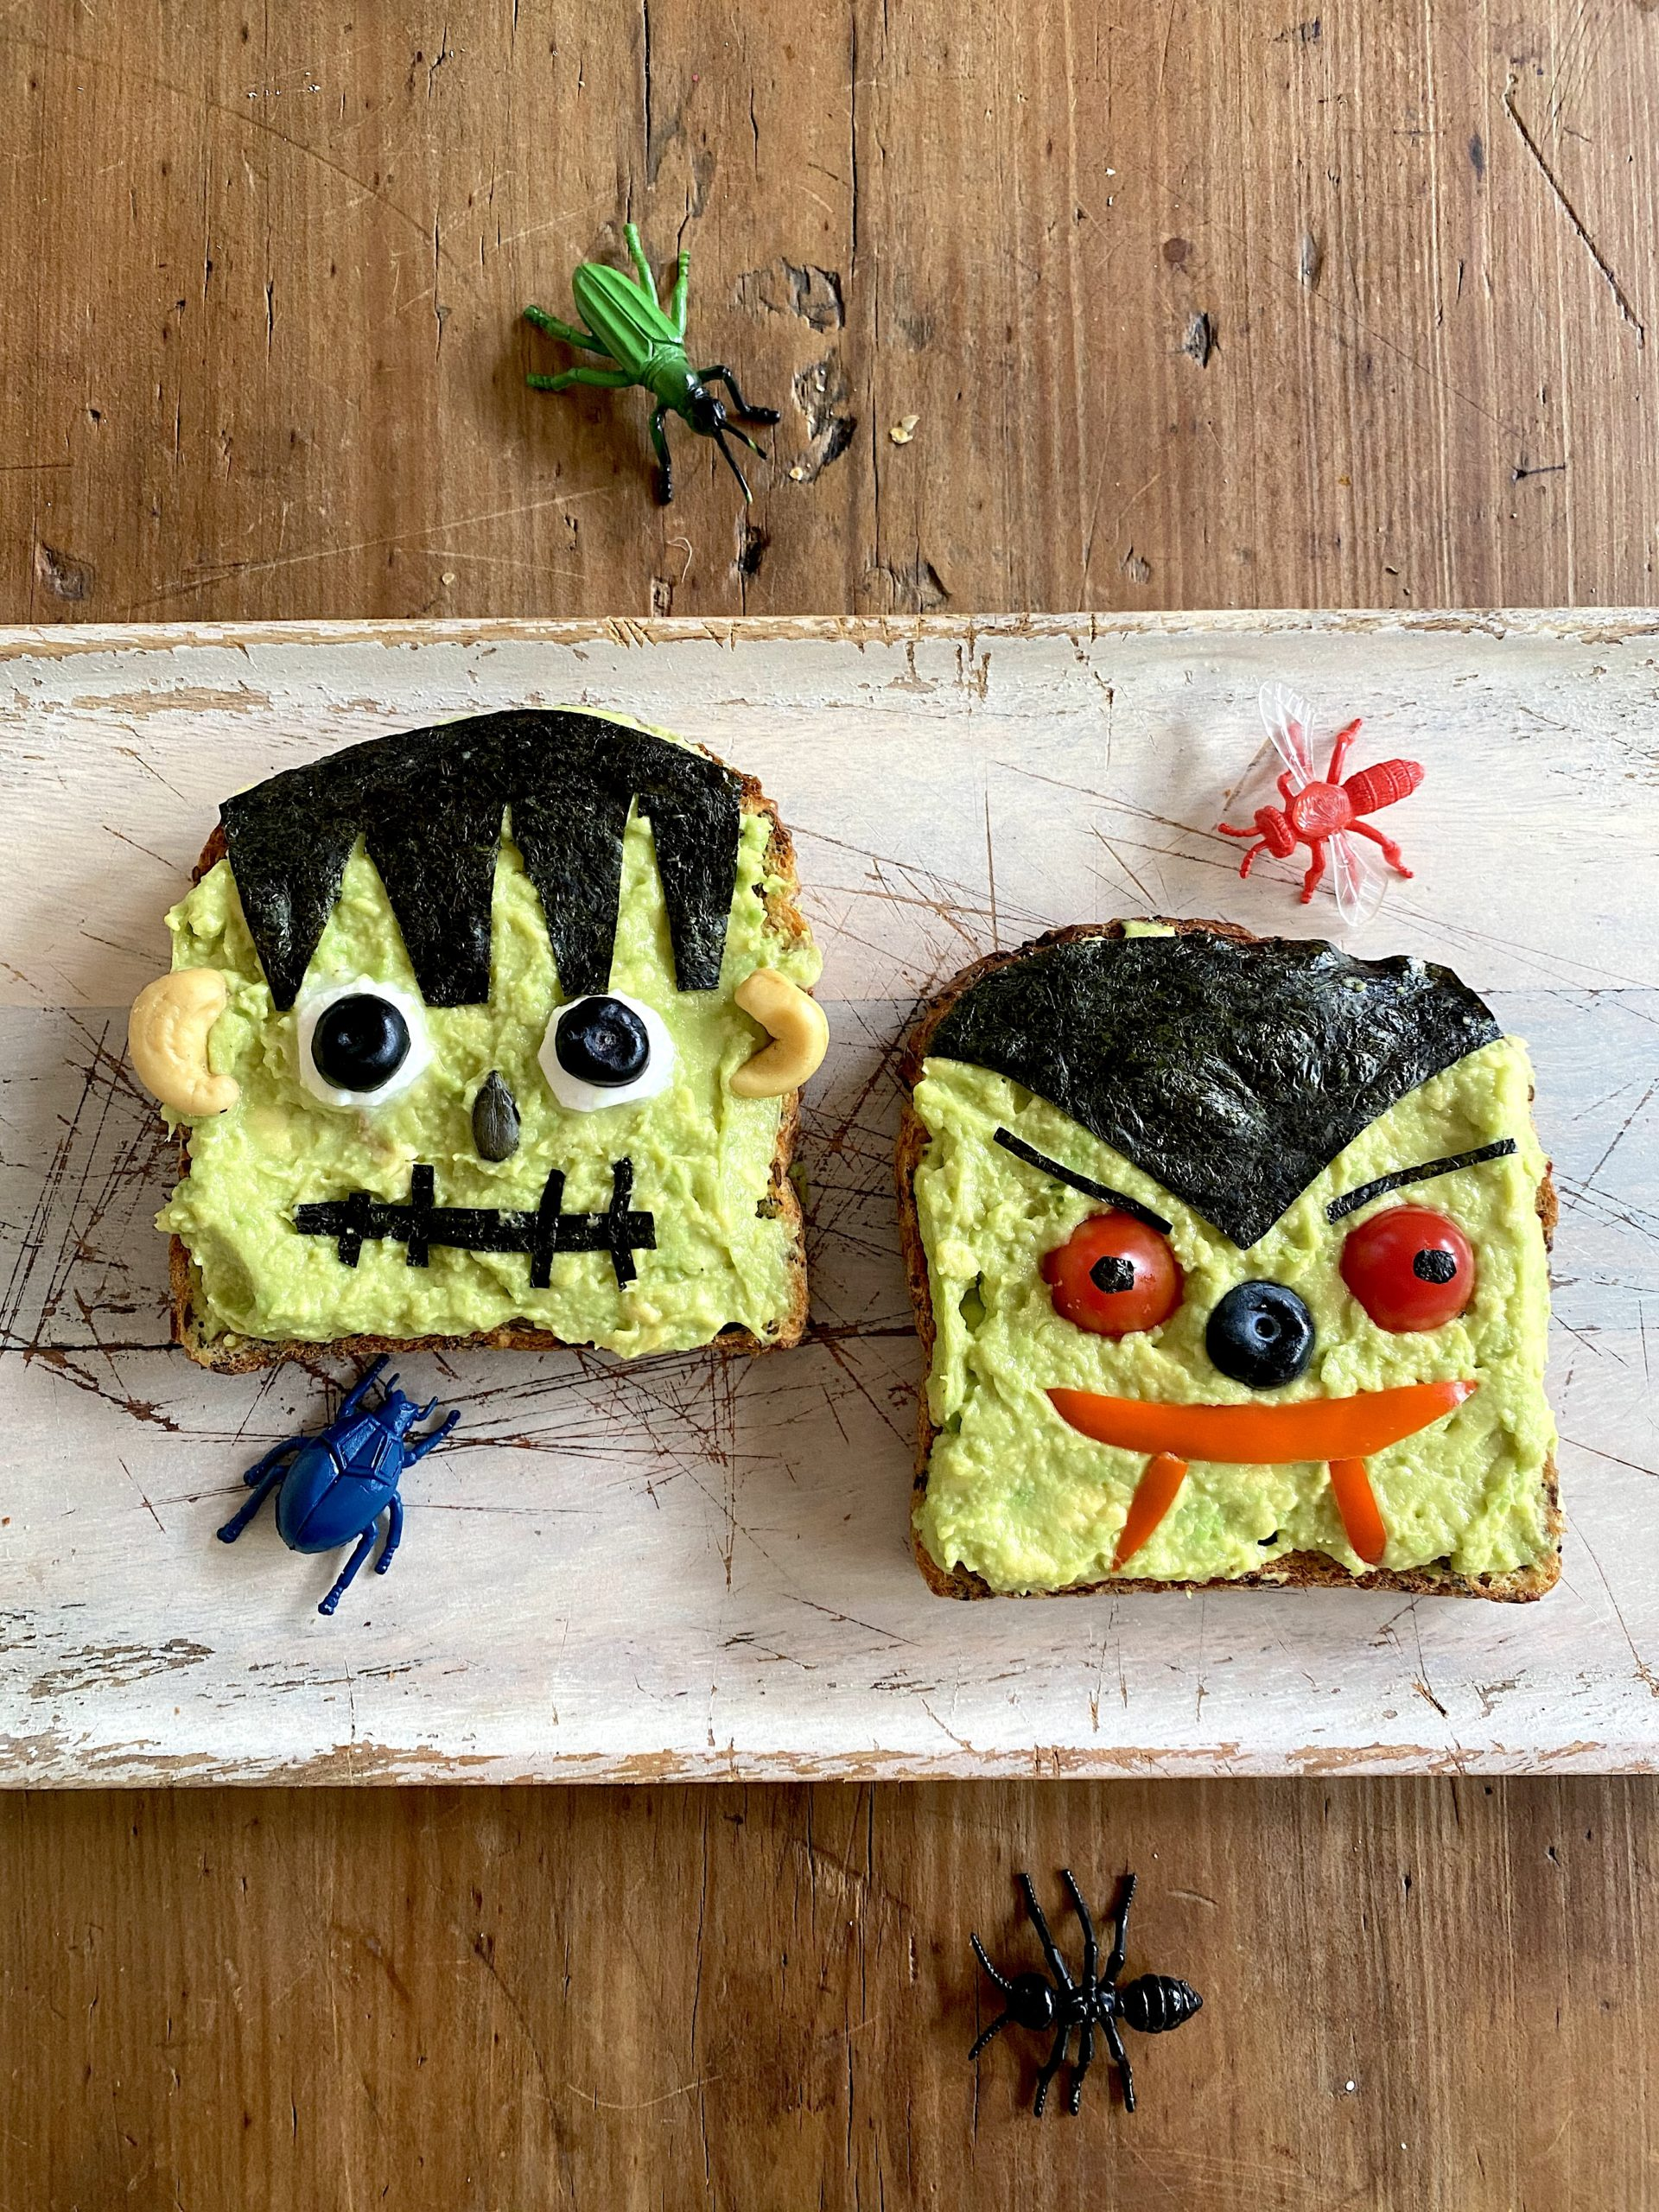 Spooktacular Avocado Toast for Halloween